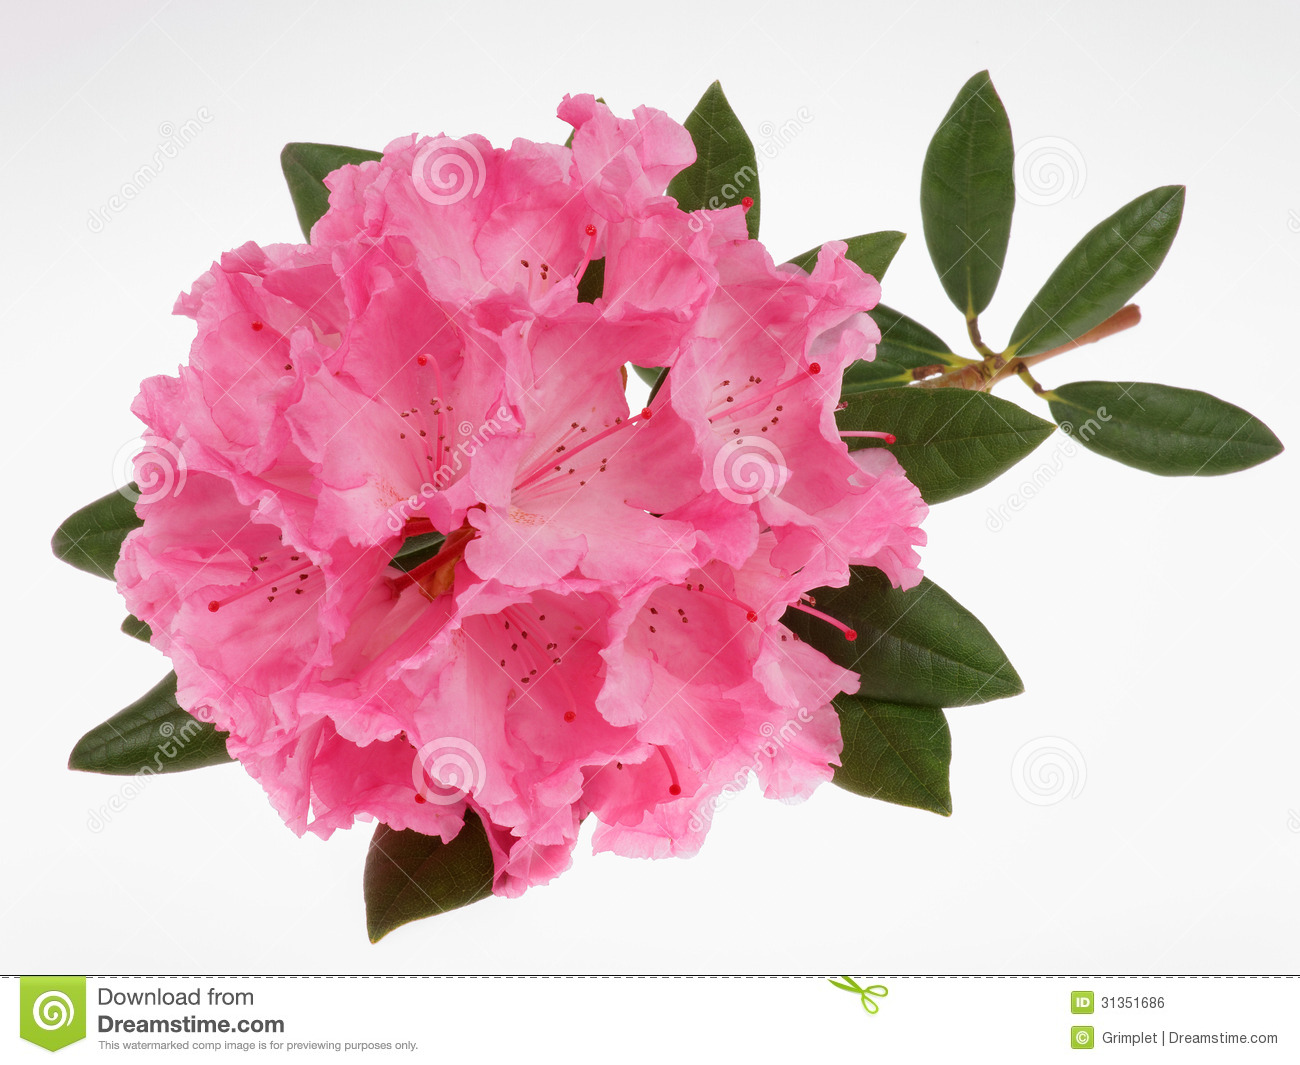 Rhododendron Royalty Free Stock Image.